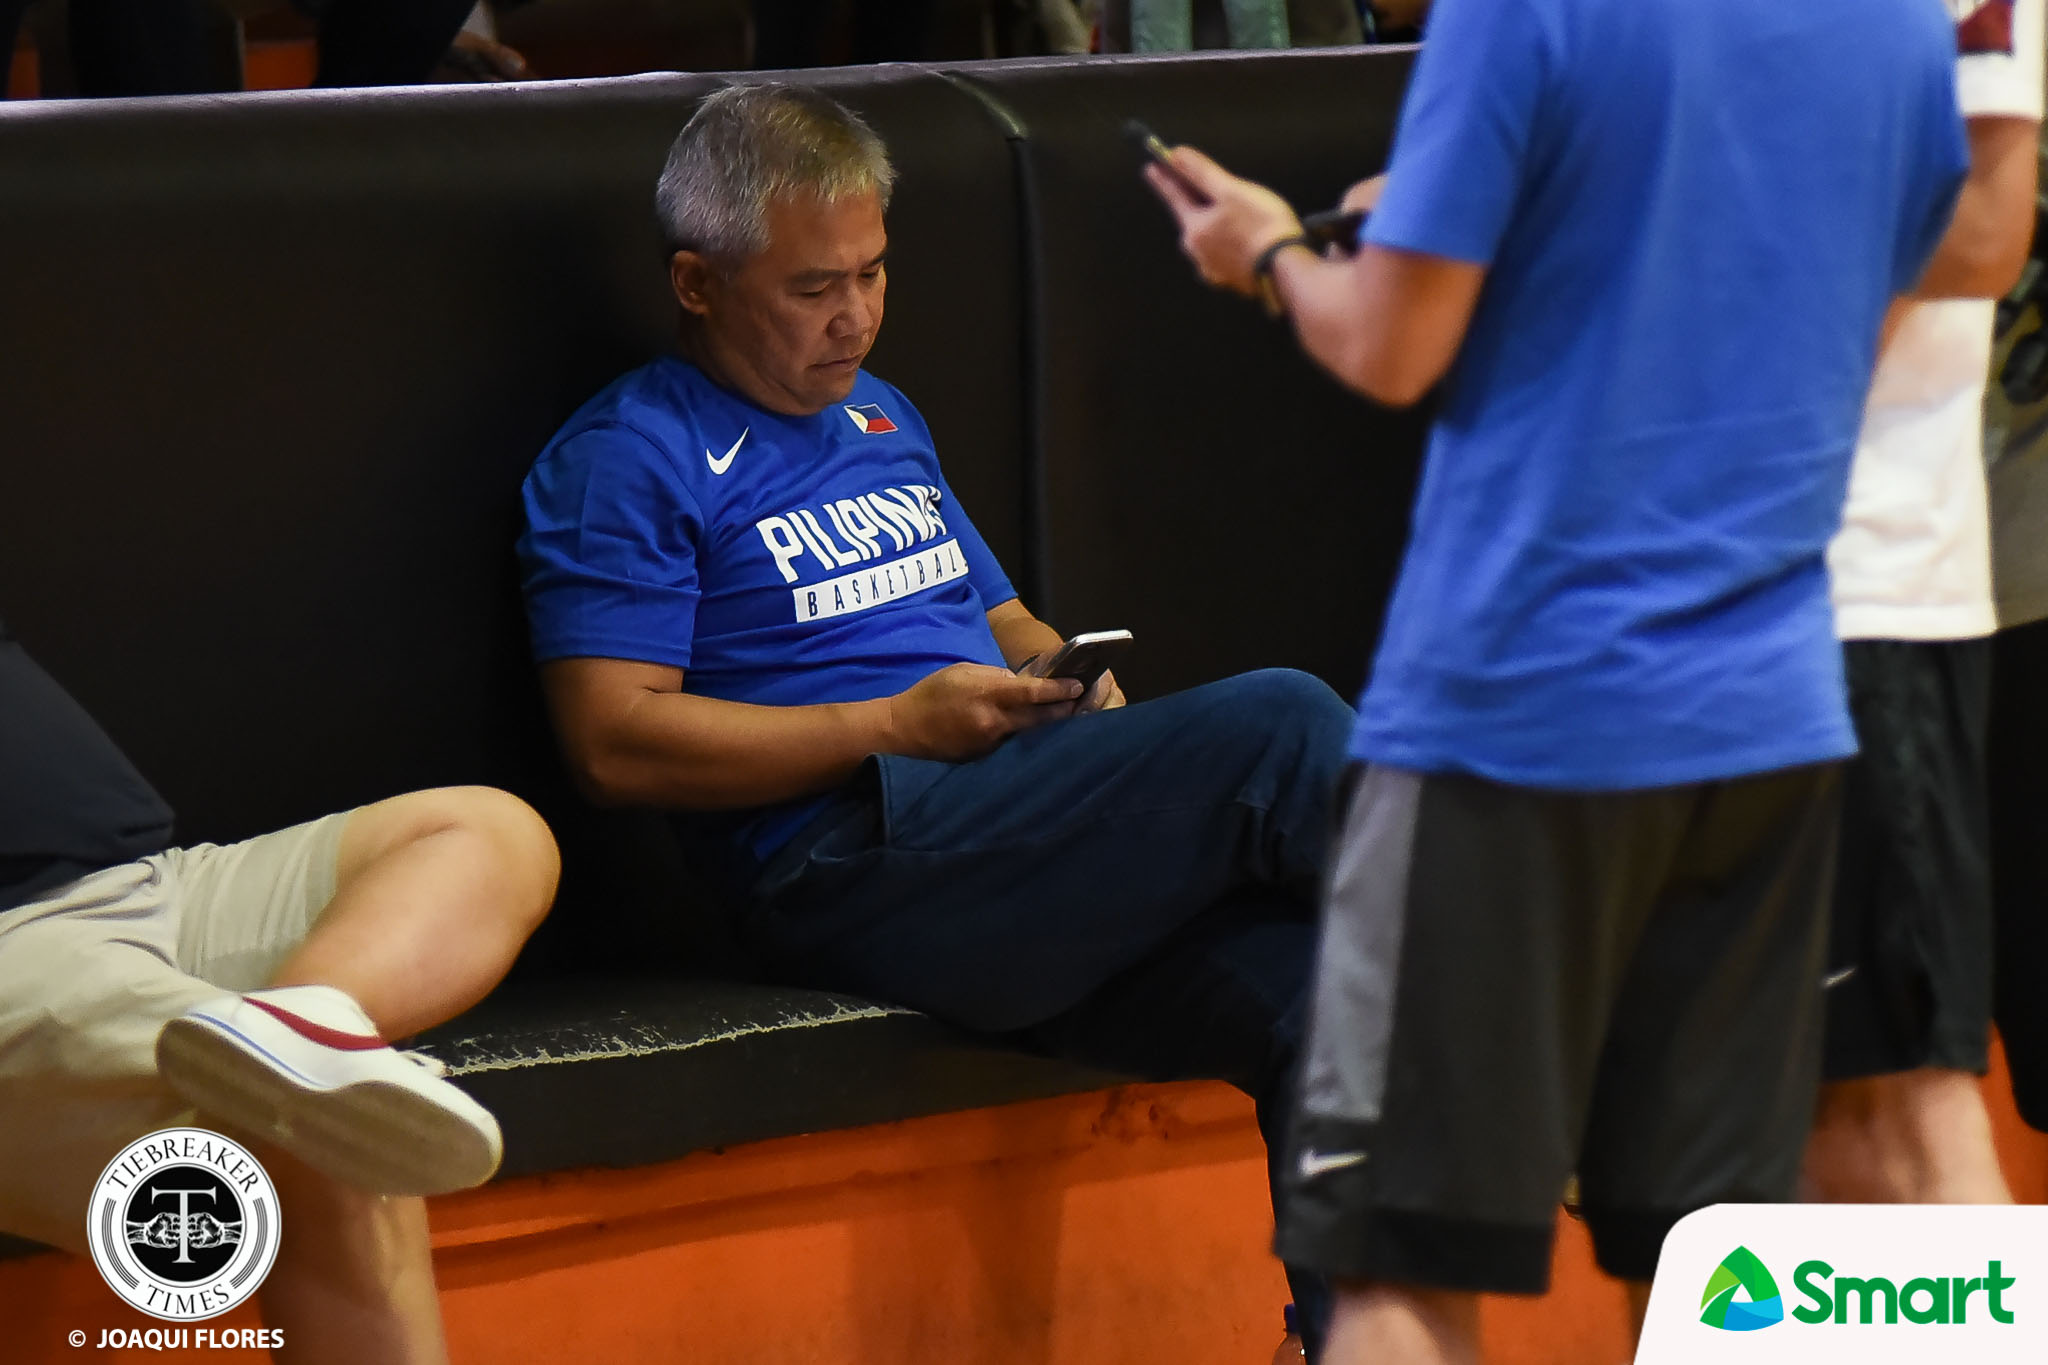 Philippine Sports News - Tiebreaker Times Chot Reyes disappointed with SMART Gilas' dismal tune-up with Alab 2019 FIBA World Cup Qualifiers Basketball Gilas Pilipinas News  Chot Reyes 2019 FIBA World Cup Qualifiers Group B